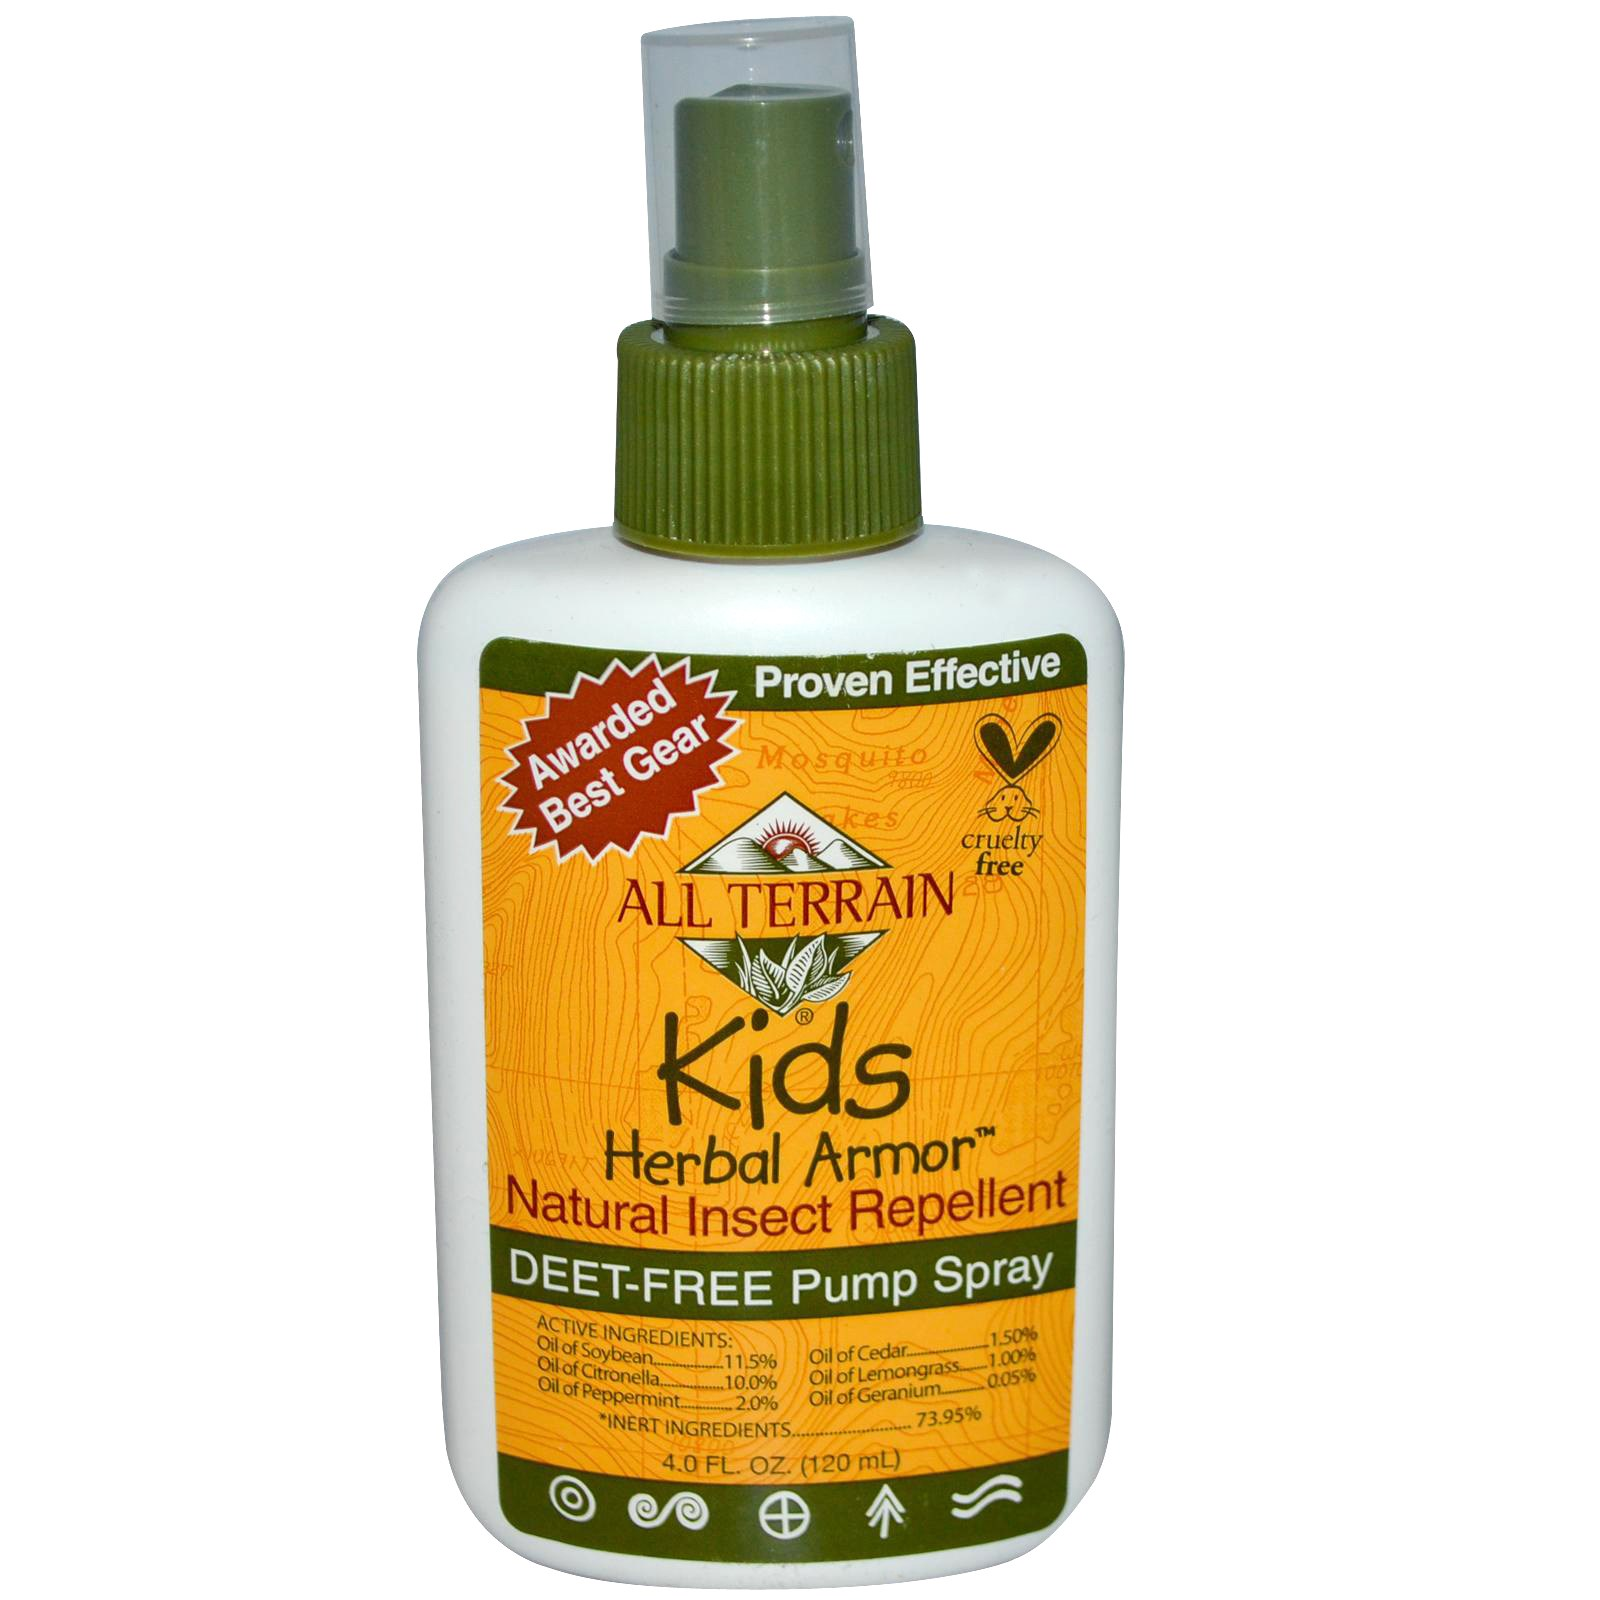 All Terrain Kids Herbal Armor 120mL